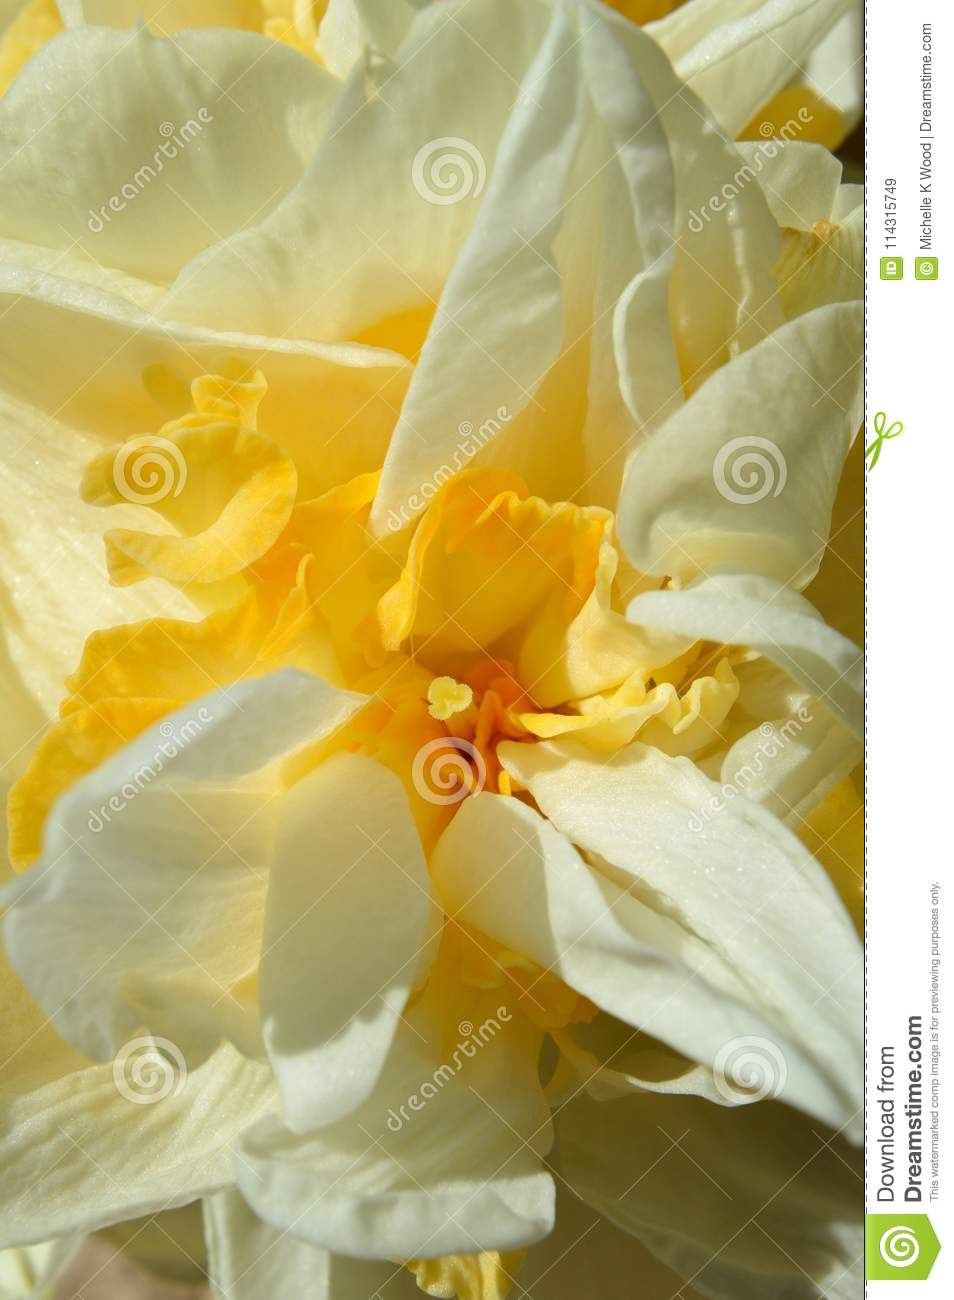 Macro Double Daffodil Narcissus White And Yellow Flower Stock Image